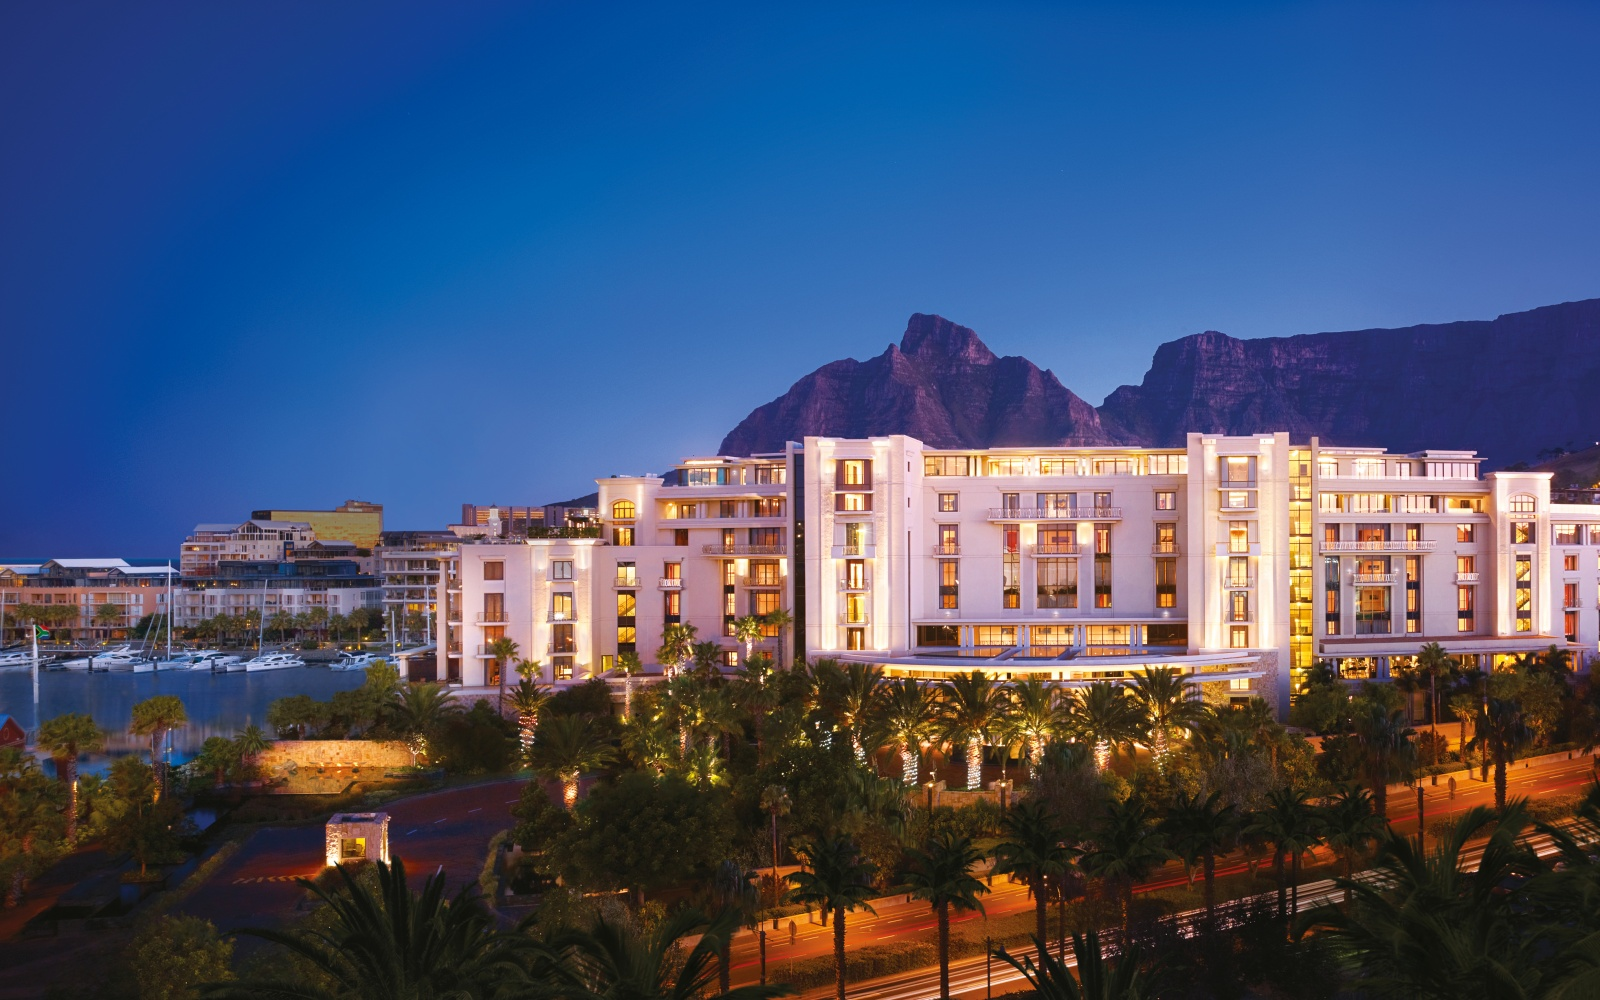 Best Hotel in Africa: One&Only Cape Town